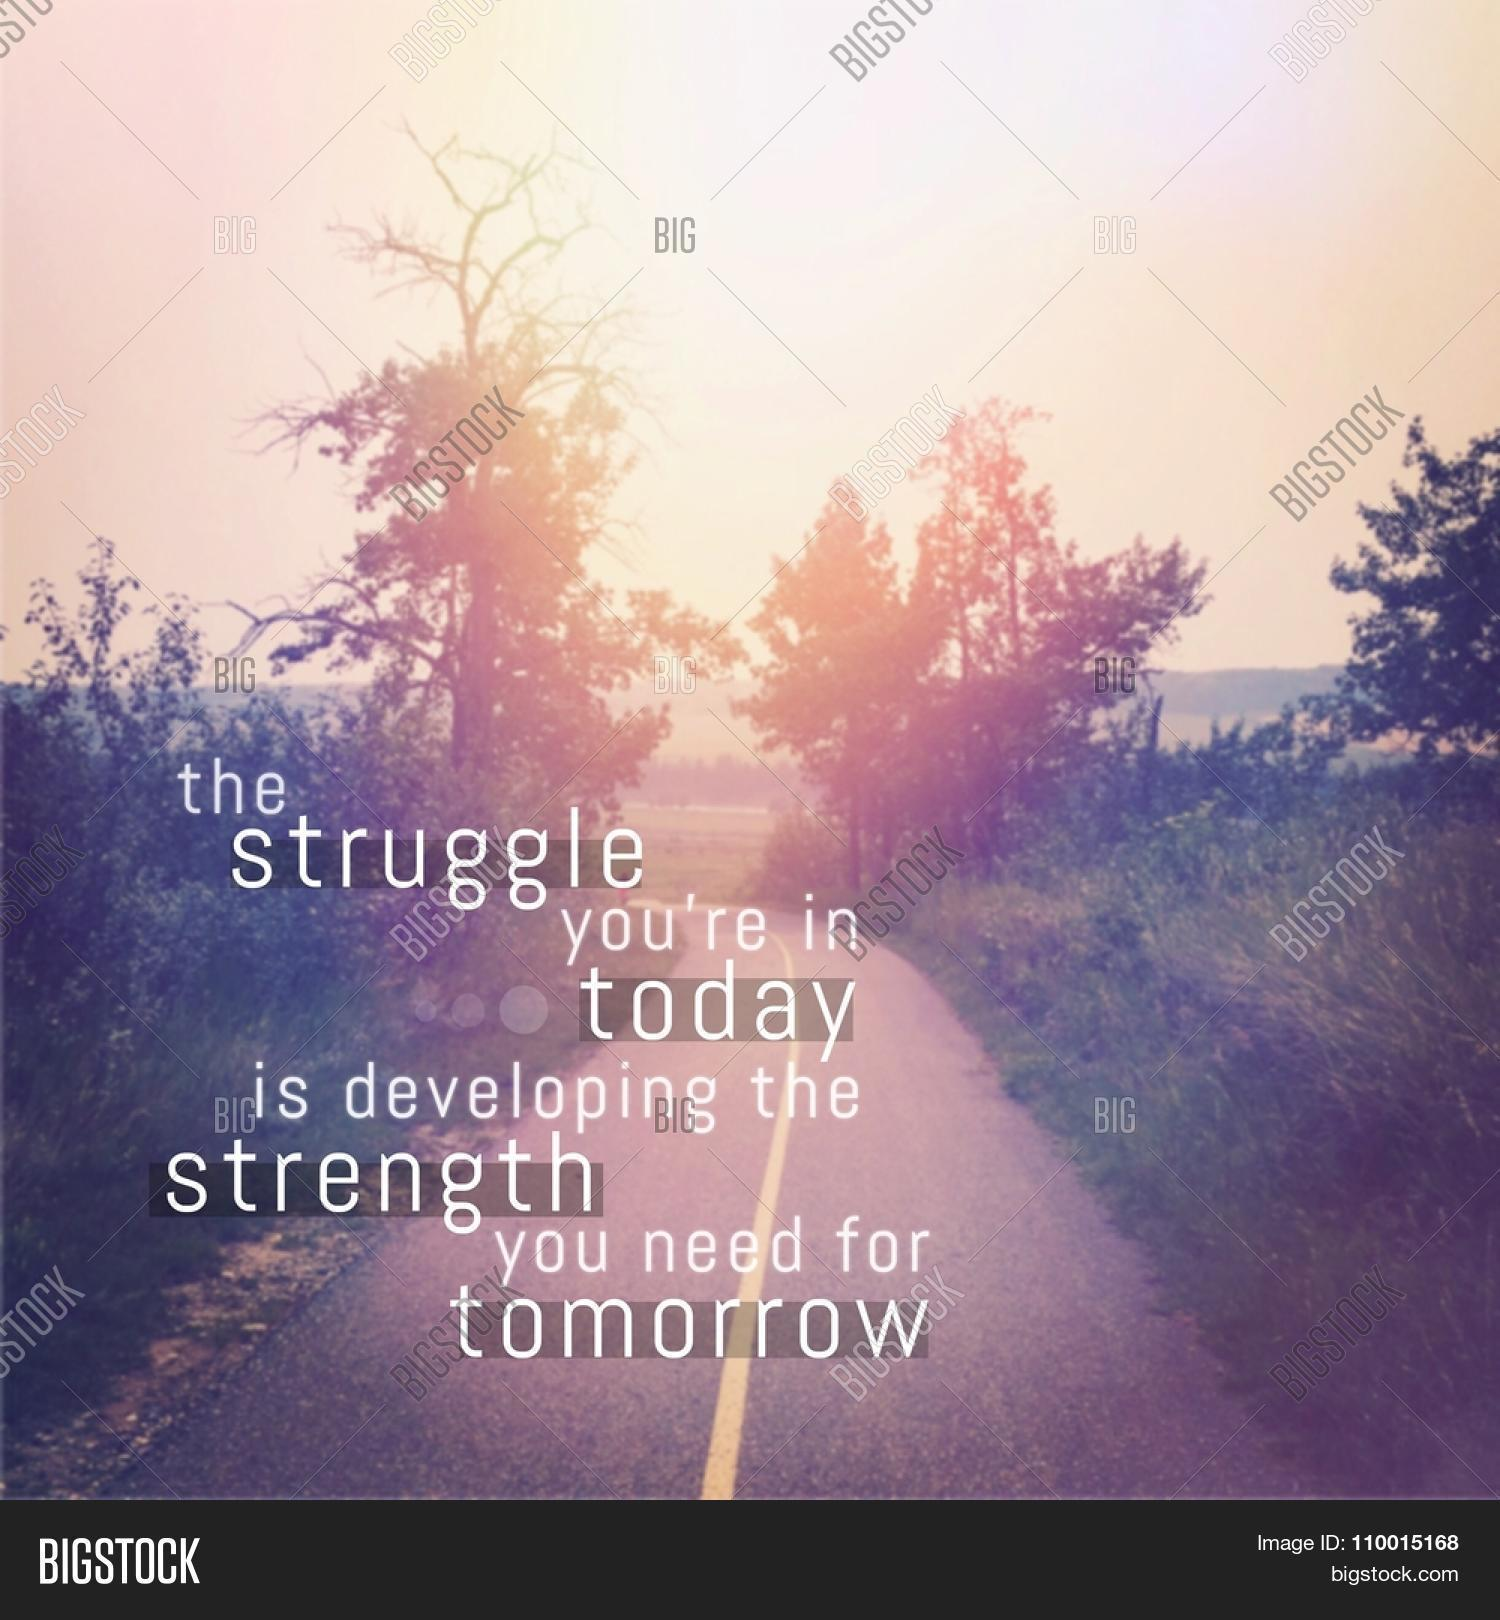 Developing Strength Motivational Quote: Inspirational Typographic Quote - Image & Photo